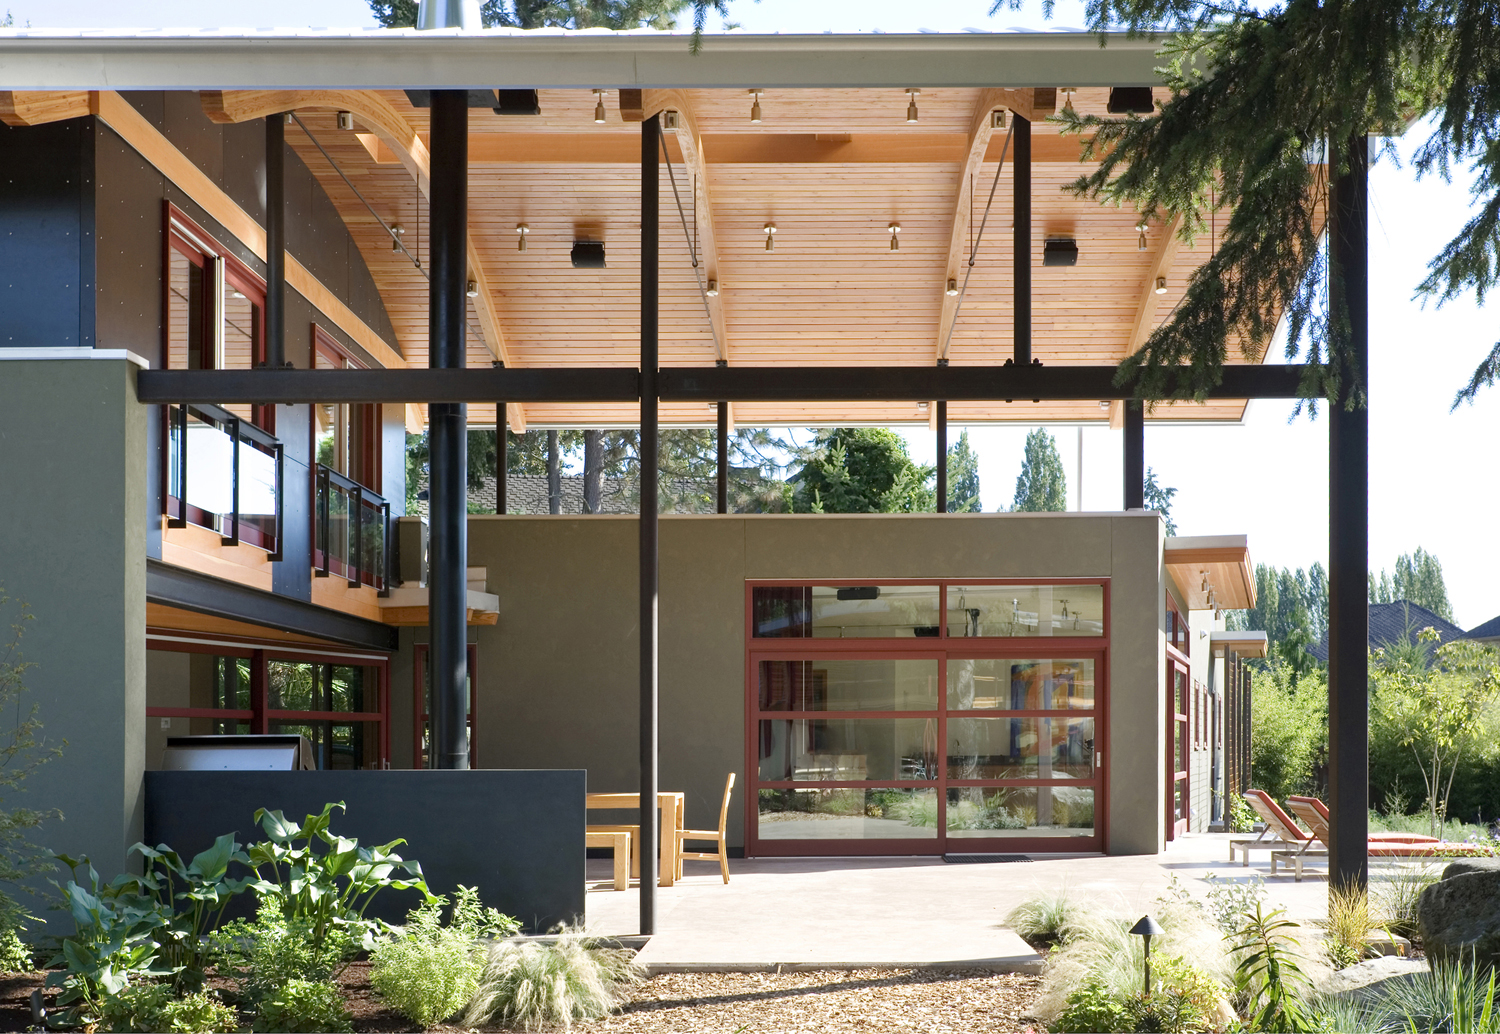 Recommended  Montana River Bank Modern Sustainable HomeModern Industrial Suburban House in Seattle with Curved Roof  . Modern Industrial Home Design. Home Design Ideas